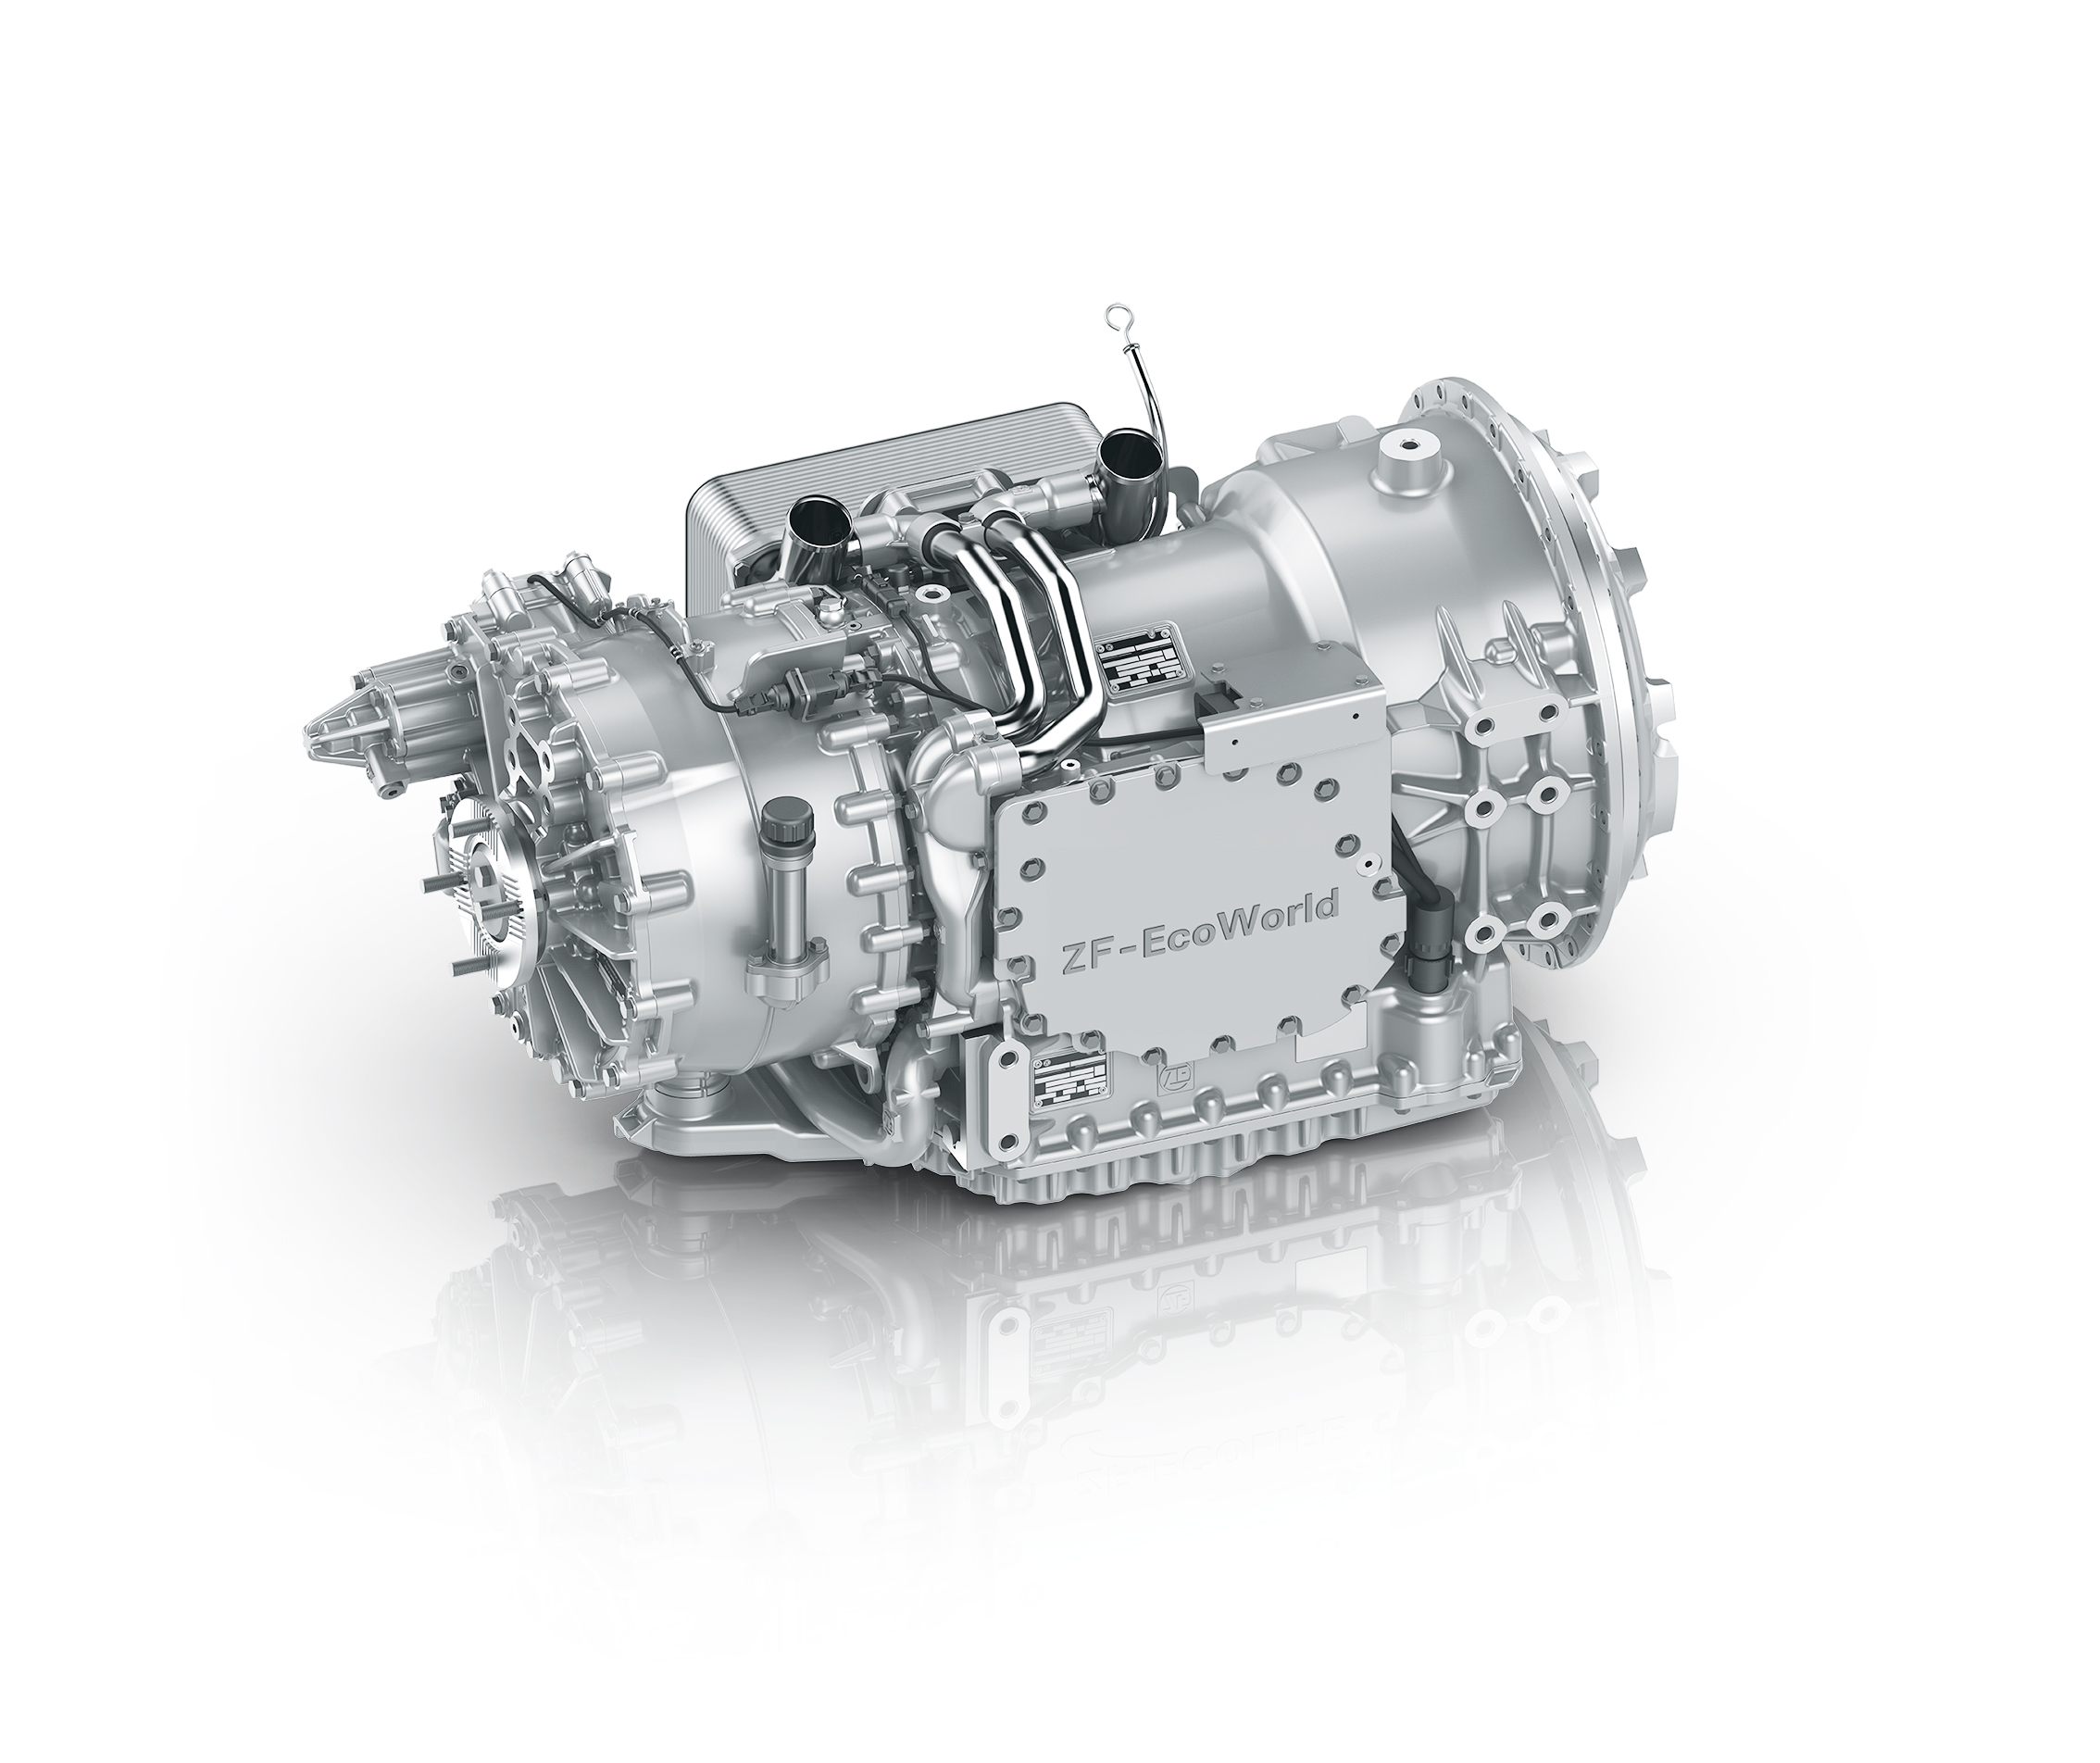 ZF EcoWorld powershift transmission for DMU